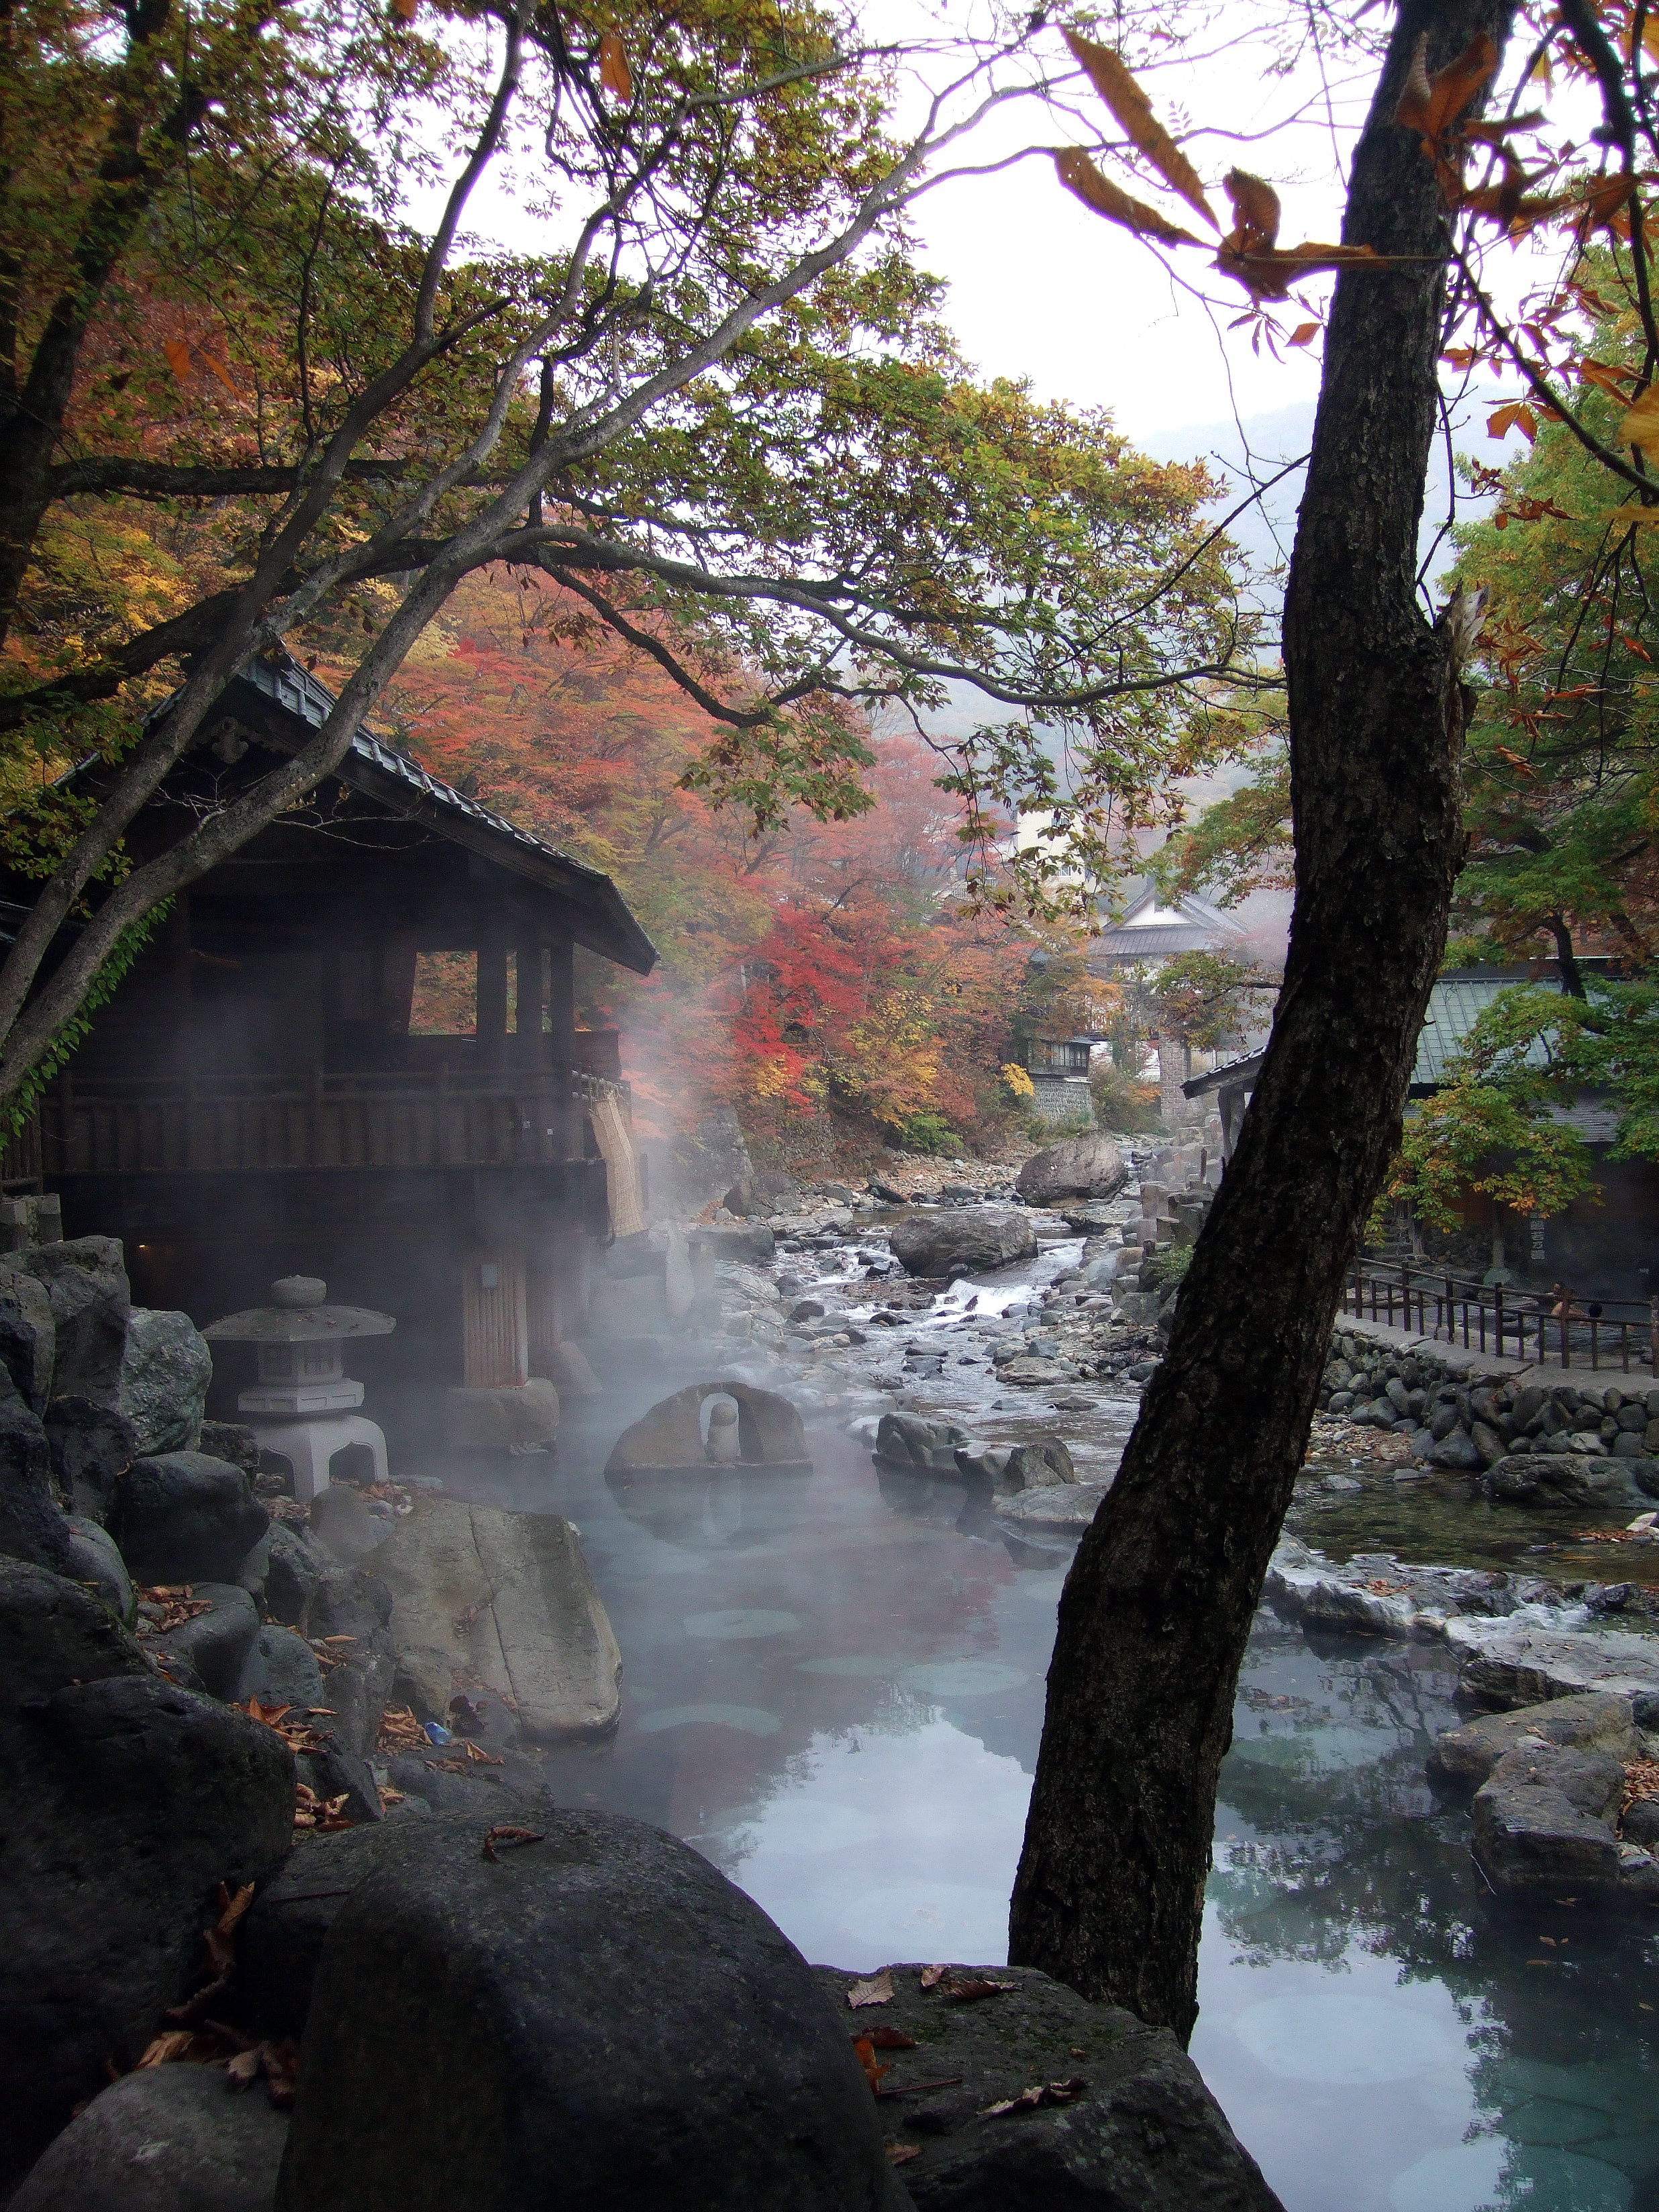 7 Onsen In Kanto Where Men And Women Can Bathe Together